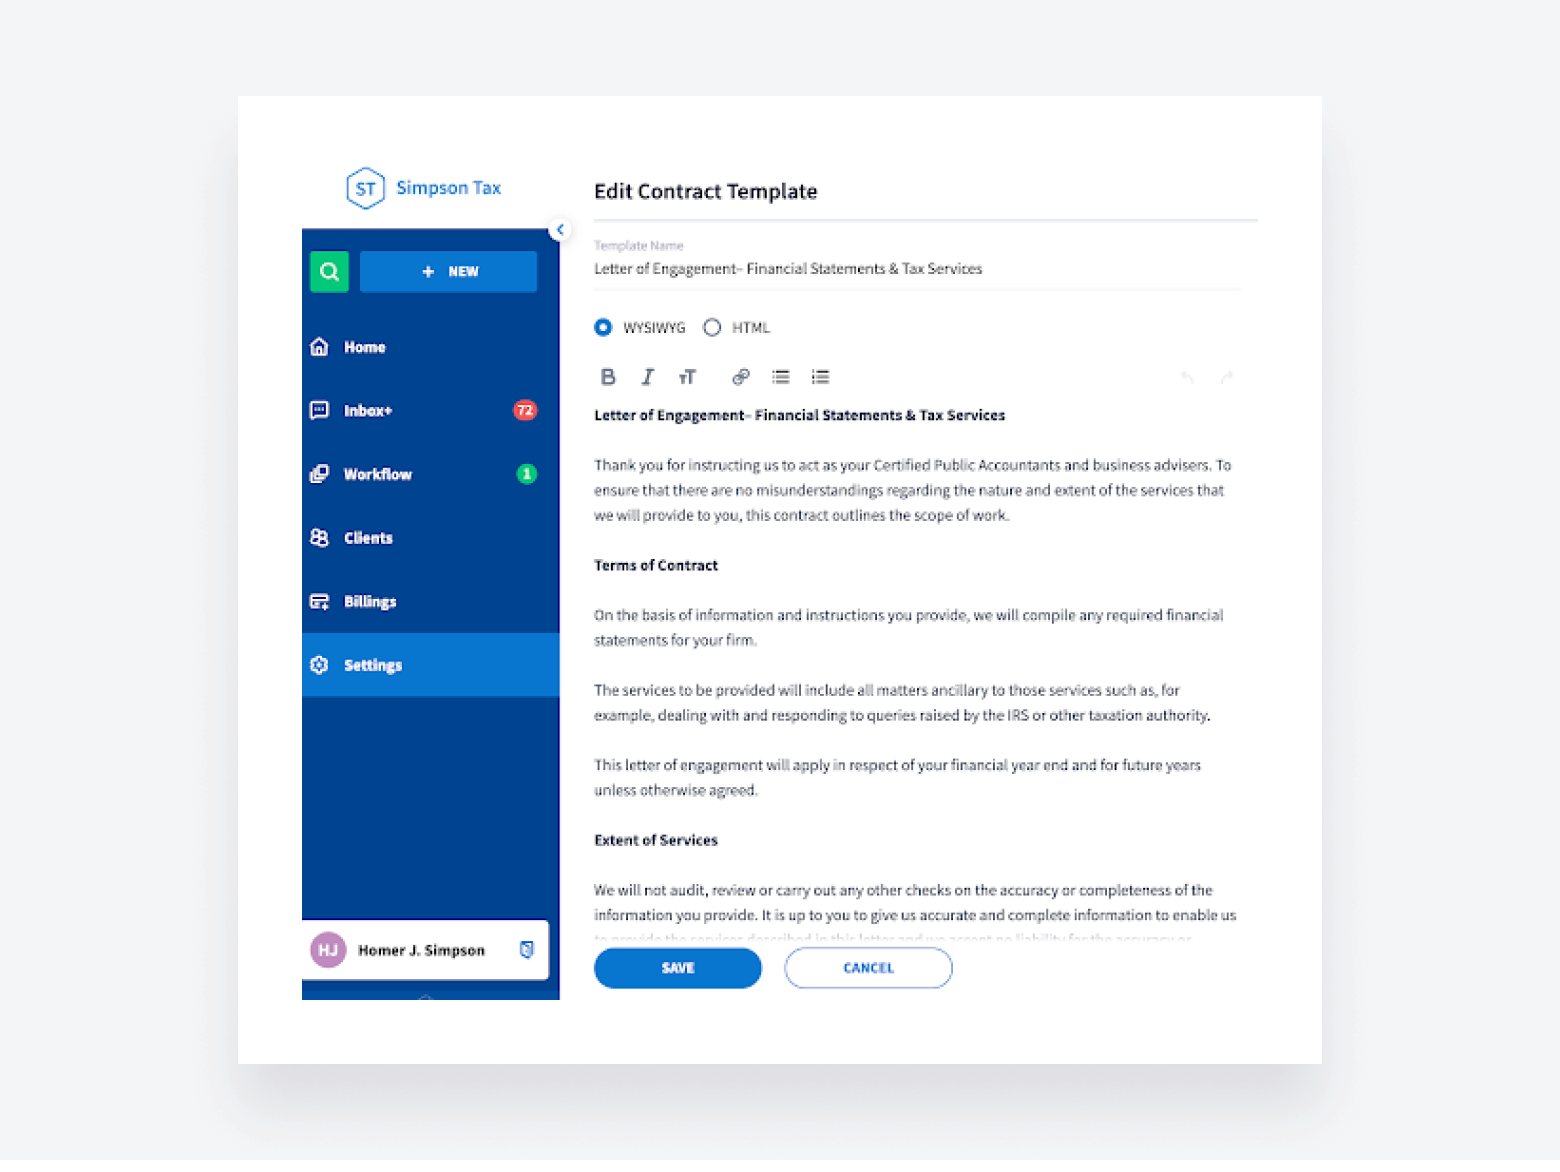 TaxDome offers accounting engagement letter templates